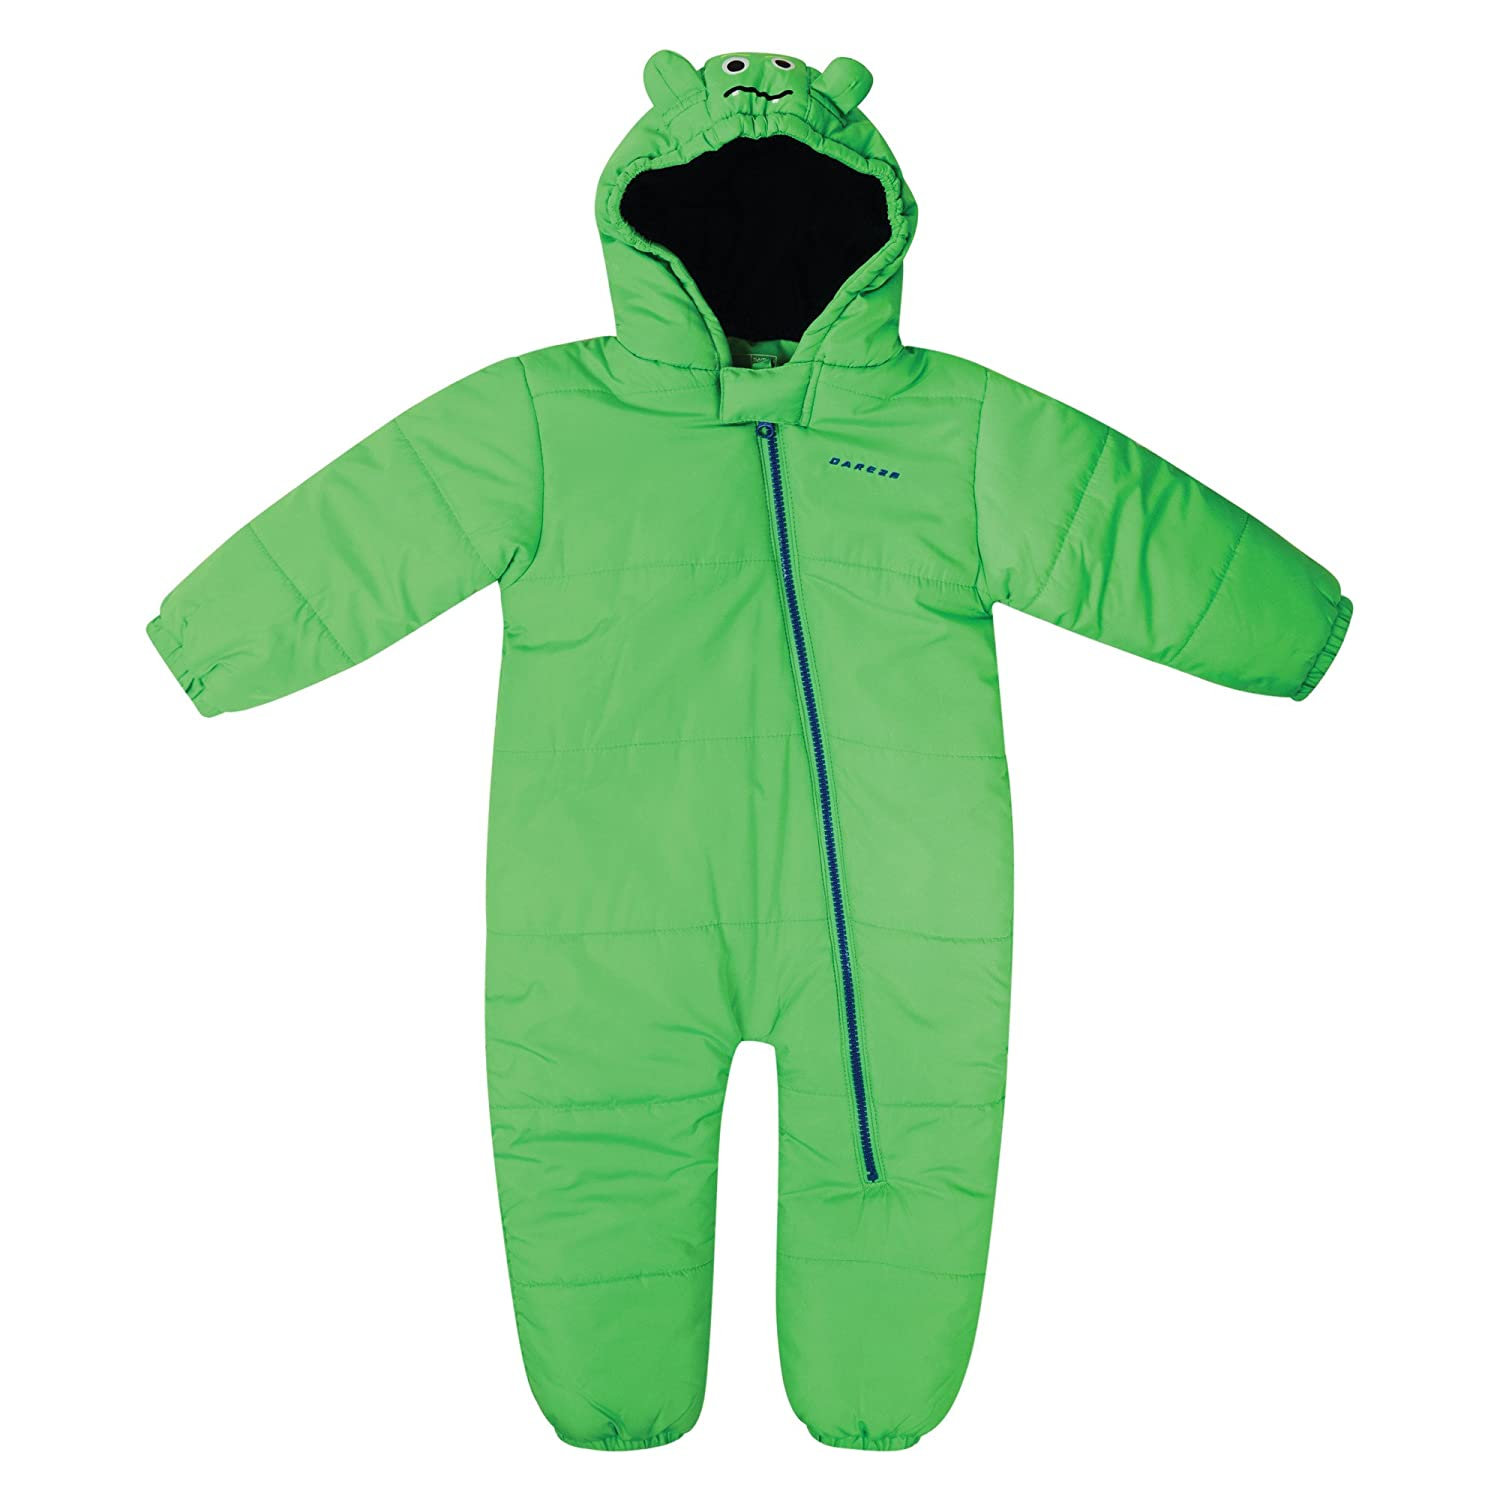 777d81377 Joules Girl's Cosy Snowsuit: Amazon.co.uk: Clothing